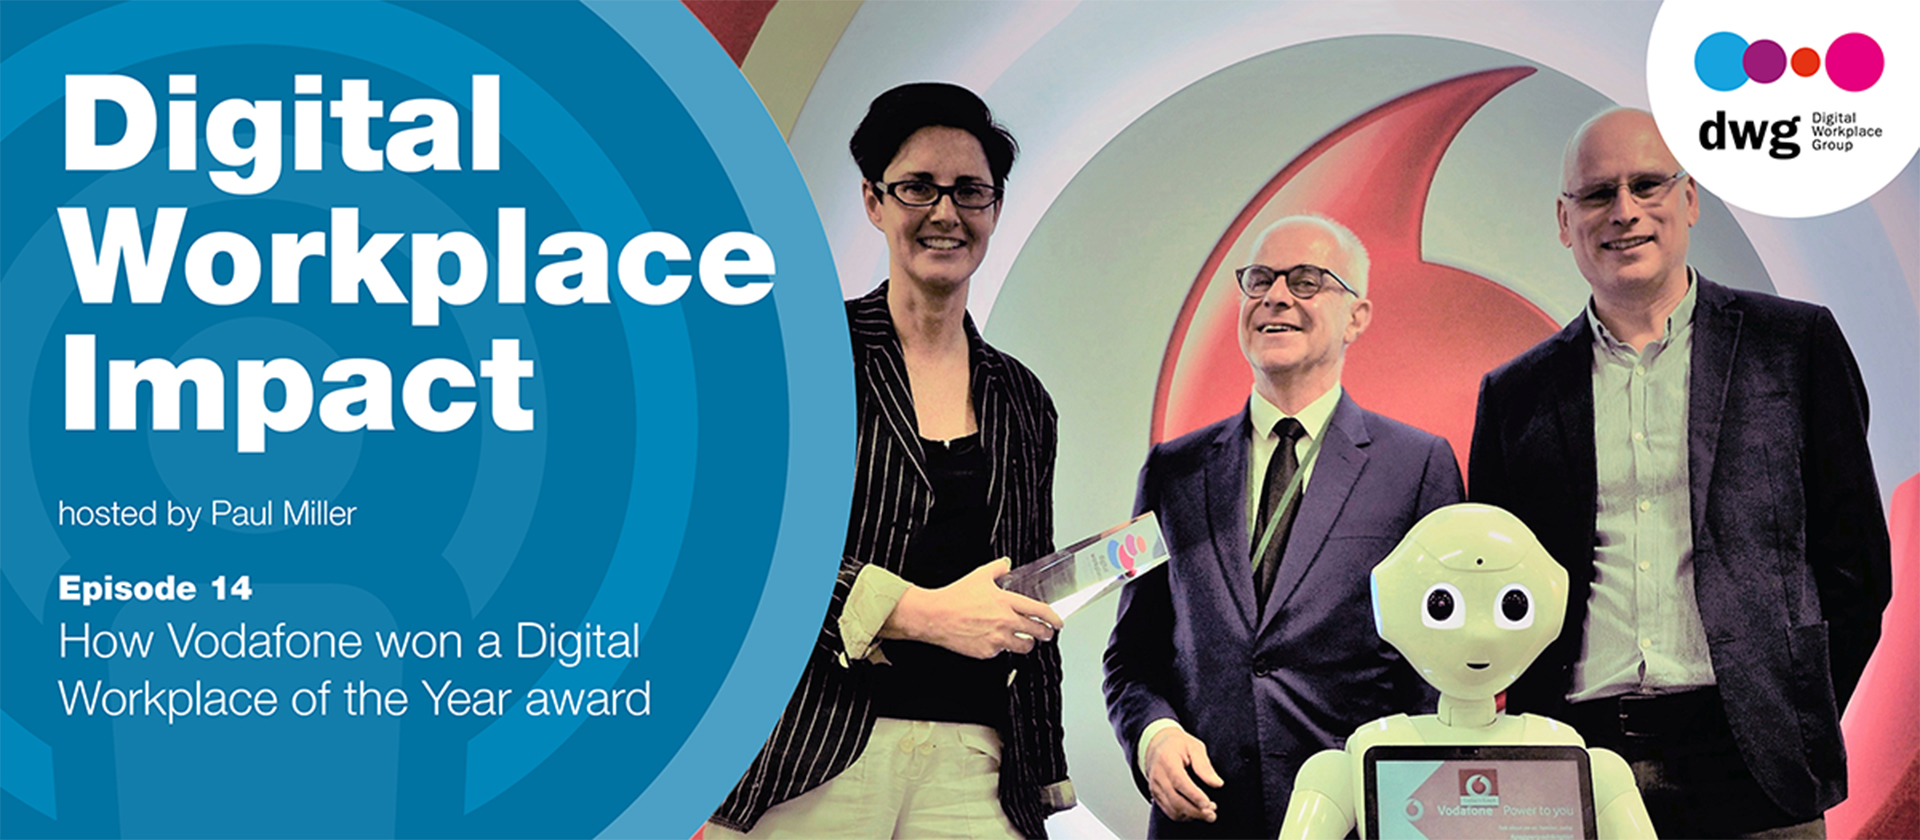 How Vodafone won a Digital Workplace of the Year award